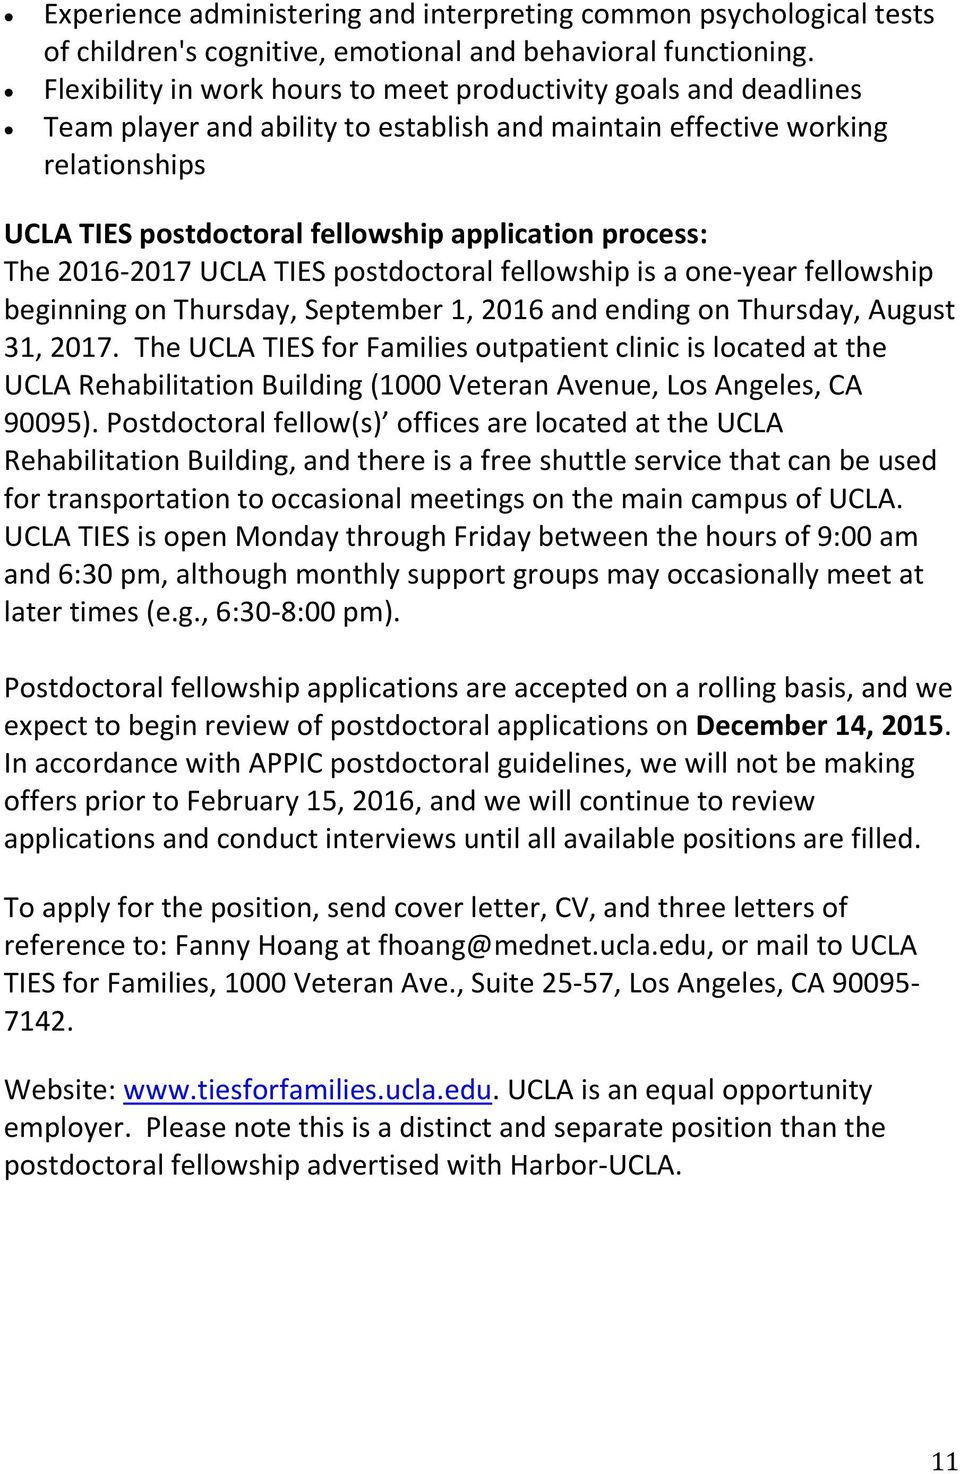 process: The 2016-2017 UCLA TIES postdoctoral fellowship is a one-year fellowship beginning on Thursday, September 1, 2016 and ending on Thursday, August 31, 2017.